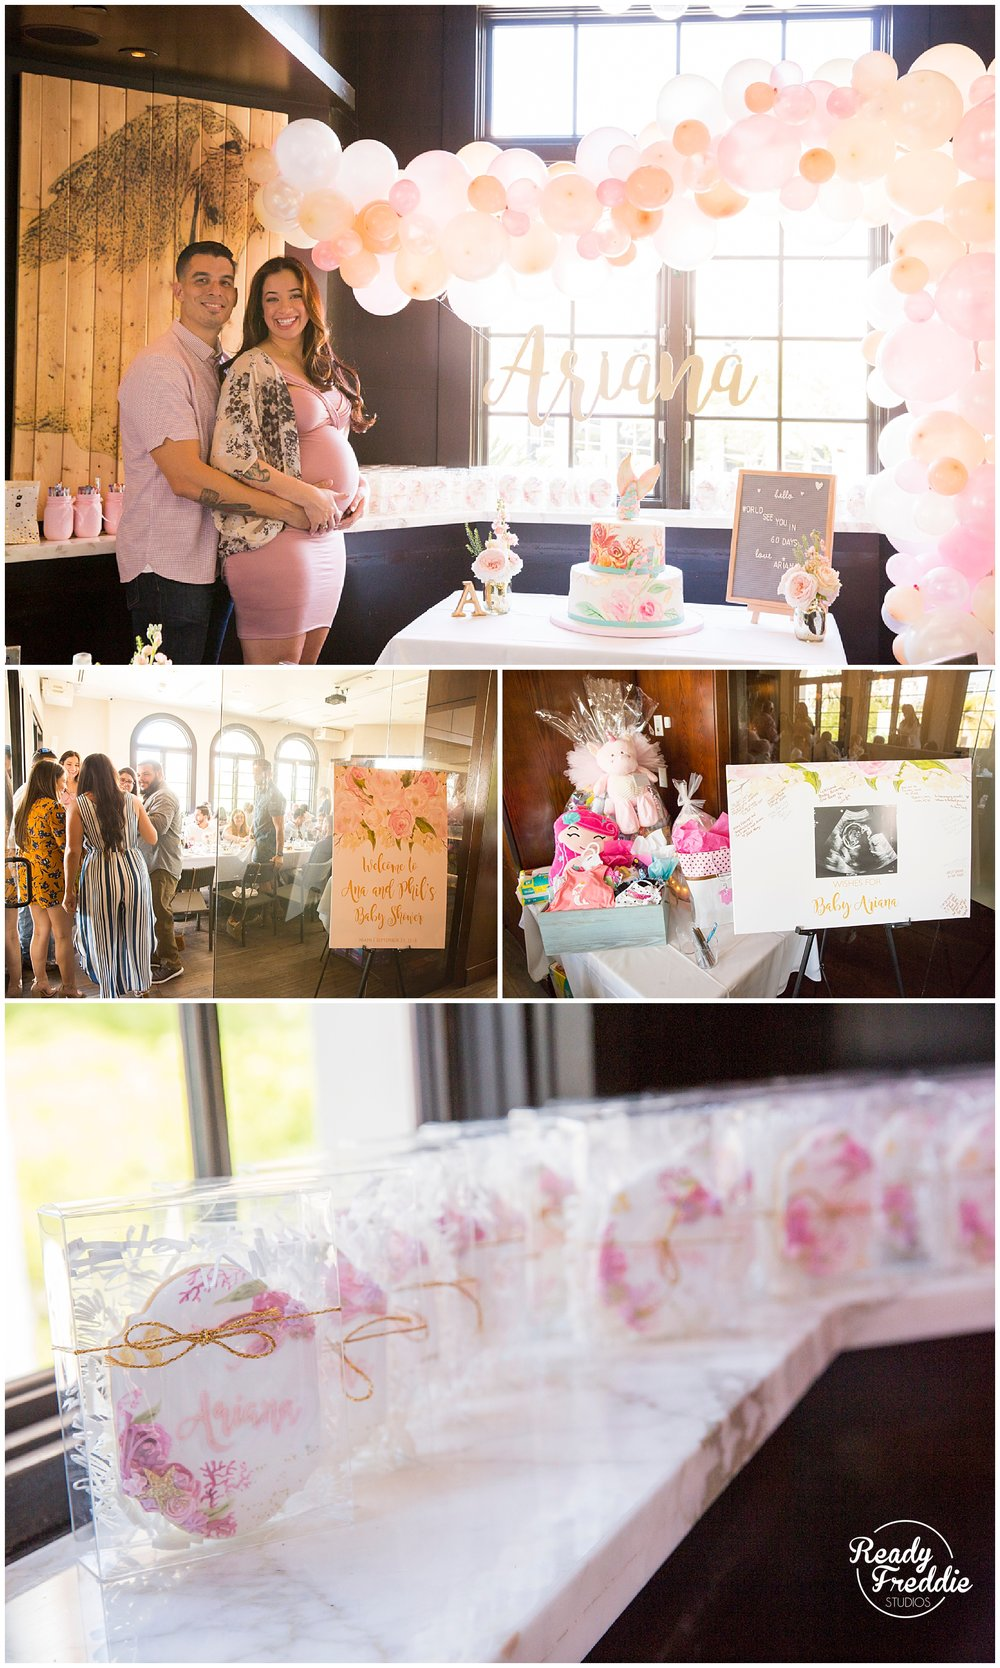 details of baby shower in miami, FL